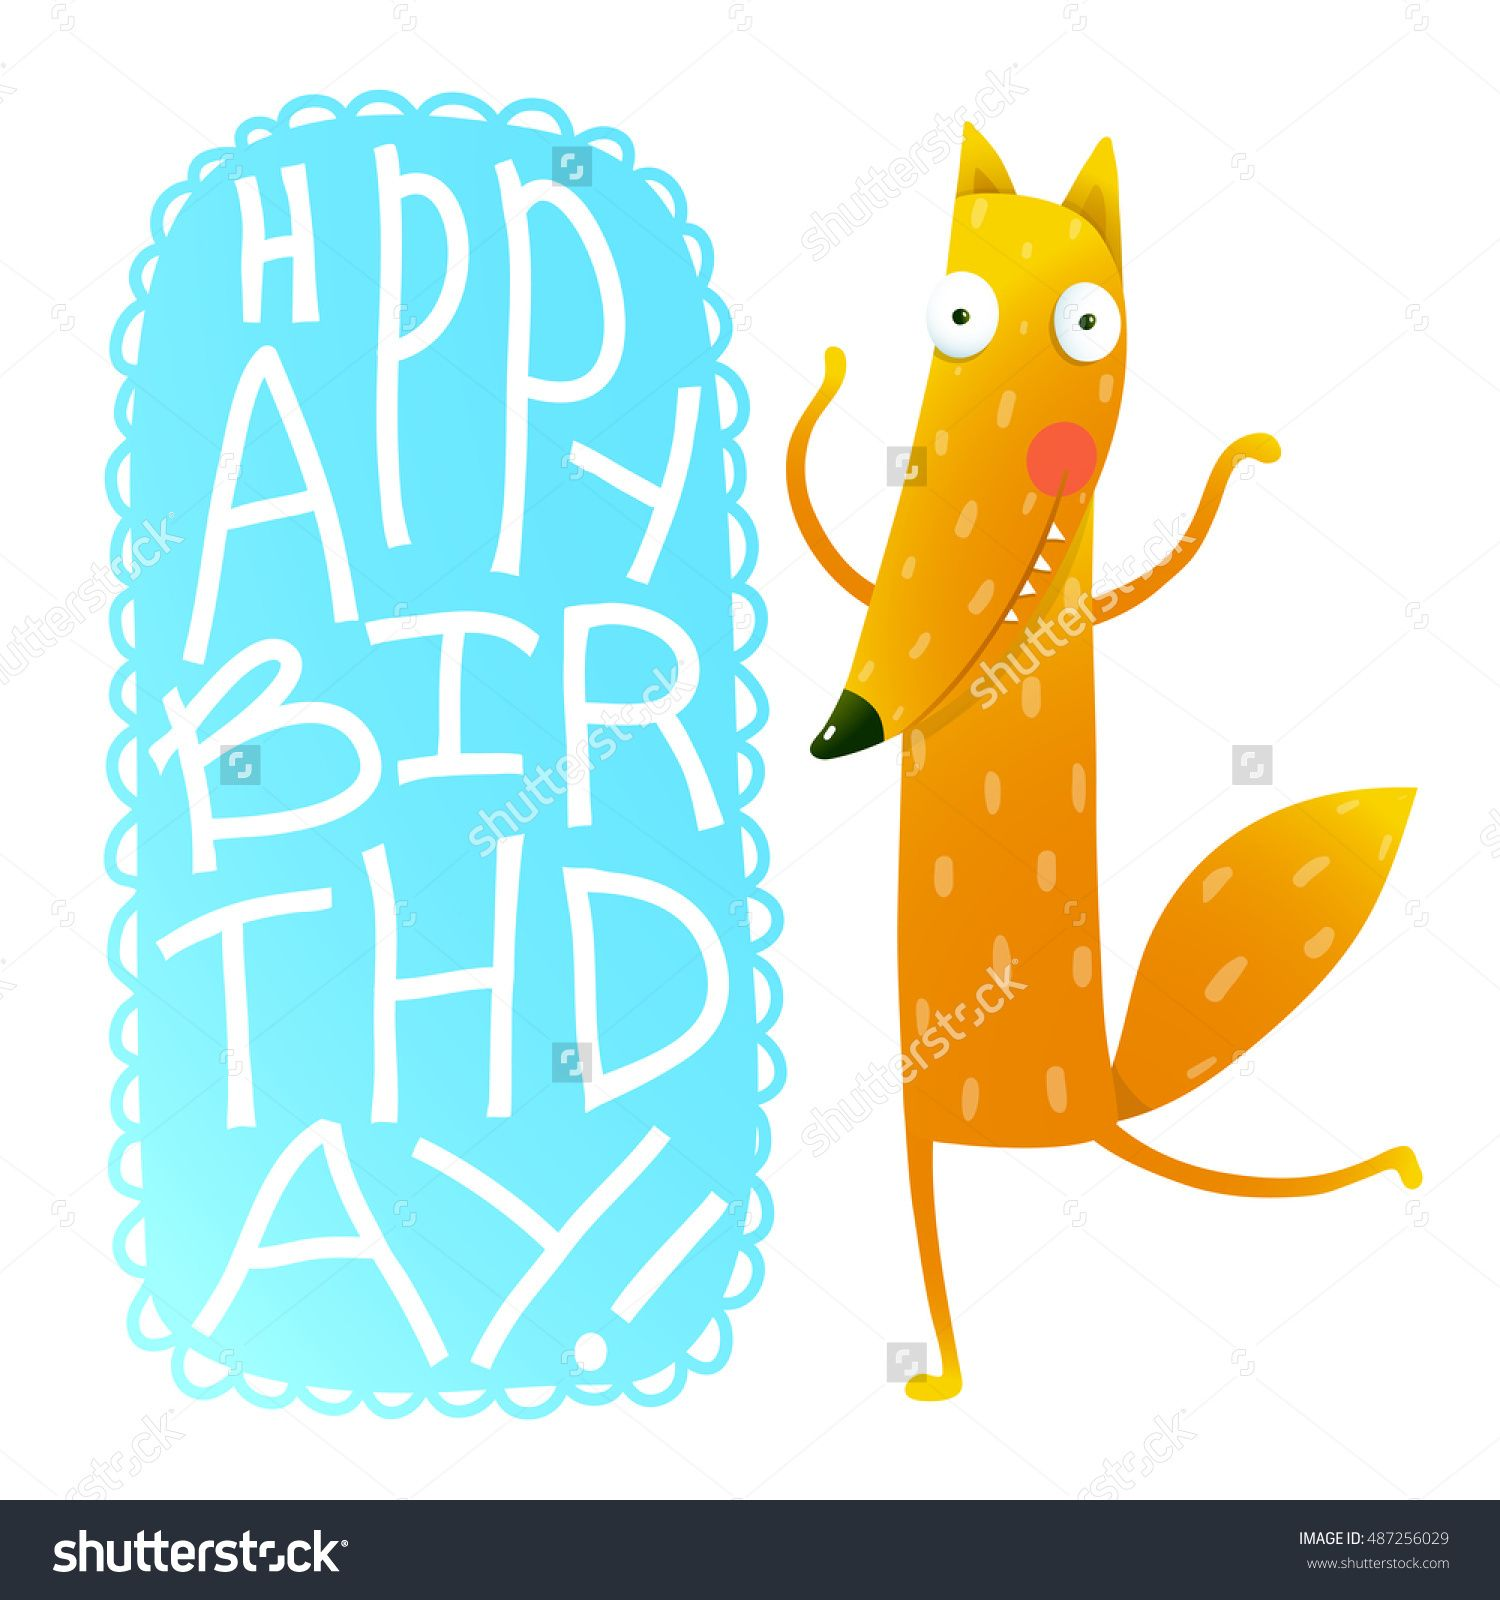 Happy Birthday Card Design With Cute Cartoon Fox Handwritten Text Funny Character For Children Animals Greeting Cards And Other Projects